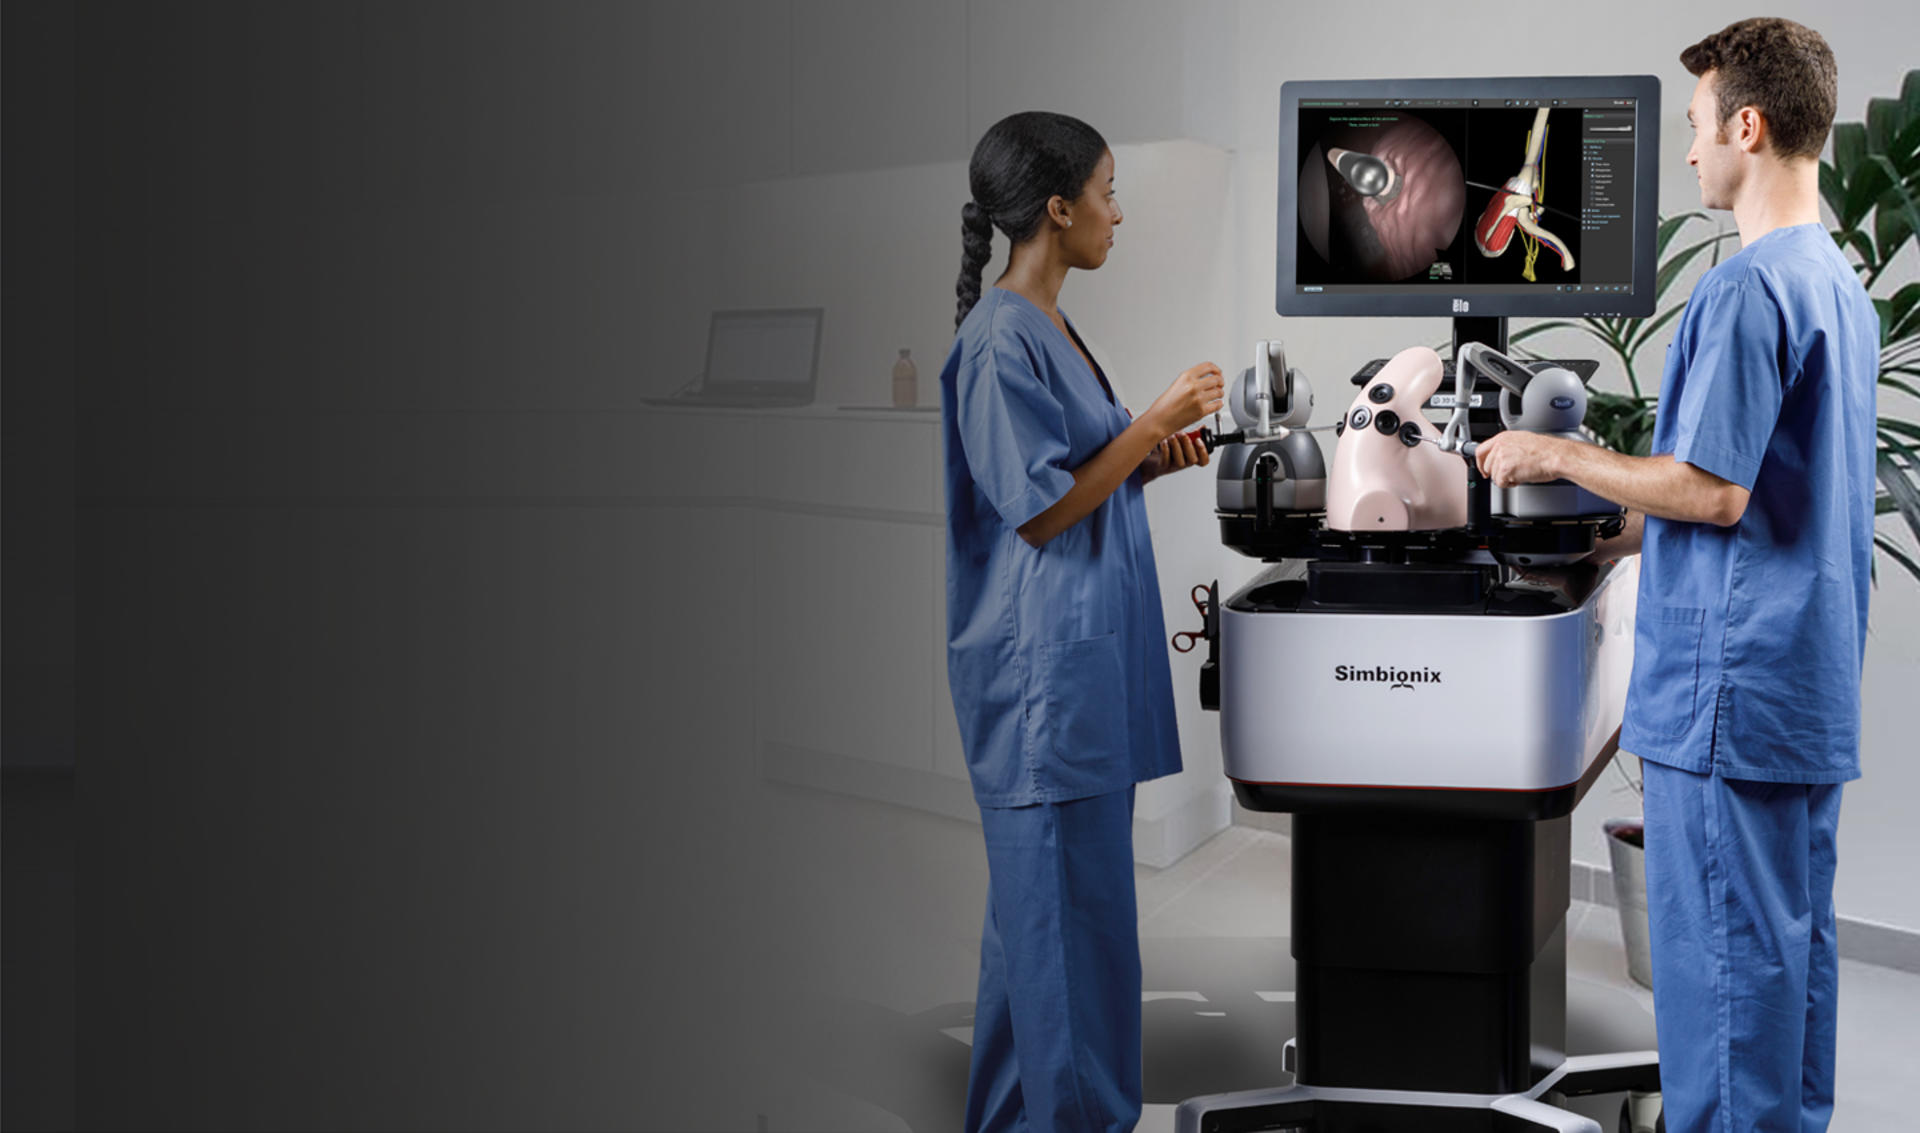 McLaren Flint Healthcare Uses the ARTHRO Mentor Simulator to Assess Residents' Performance Prior to Performing Surgery